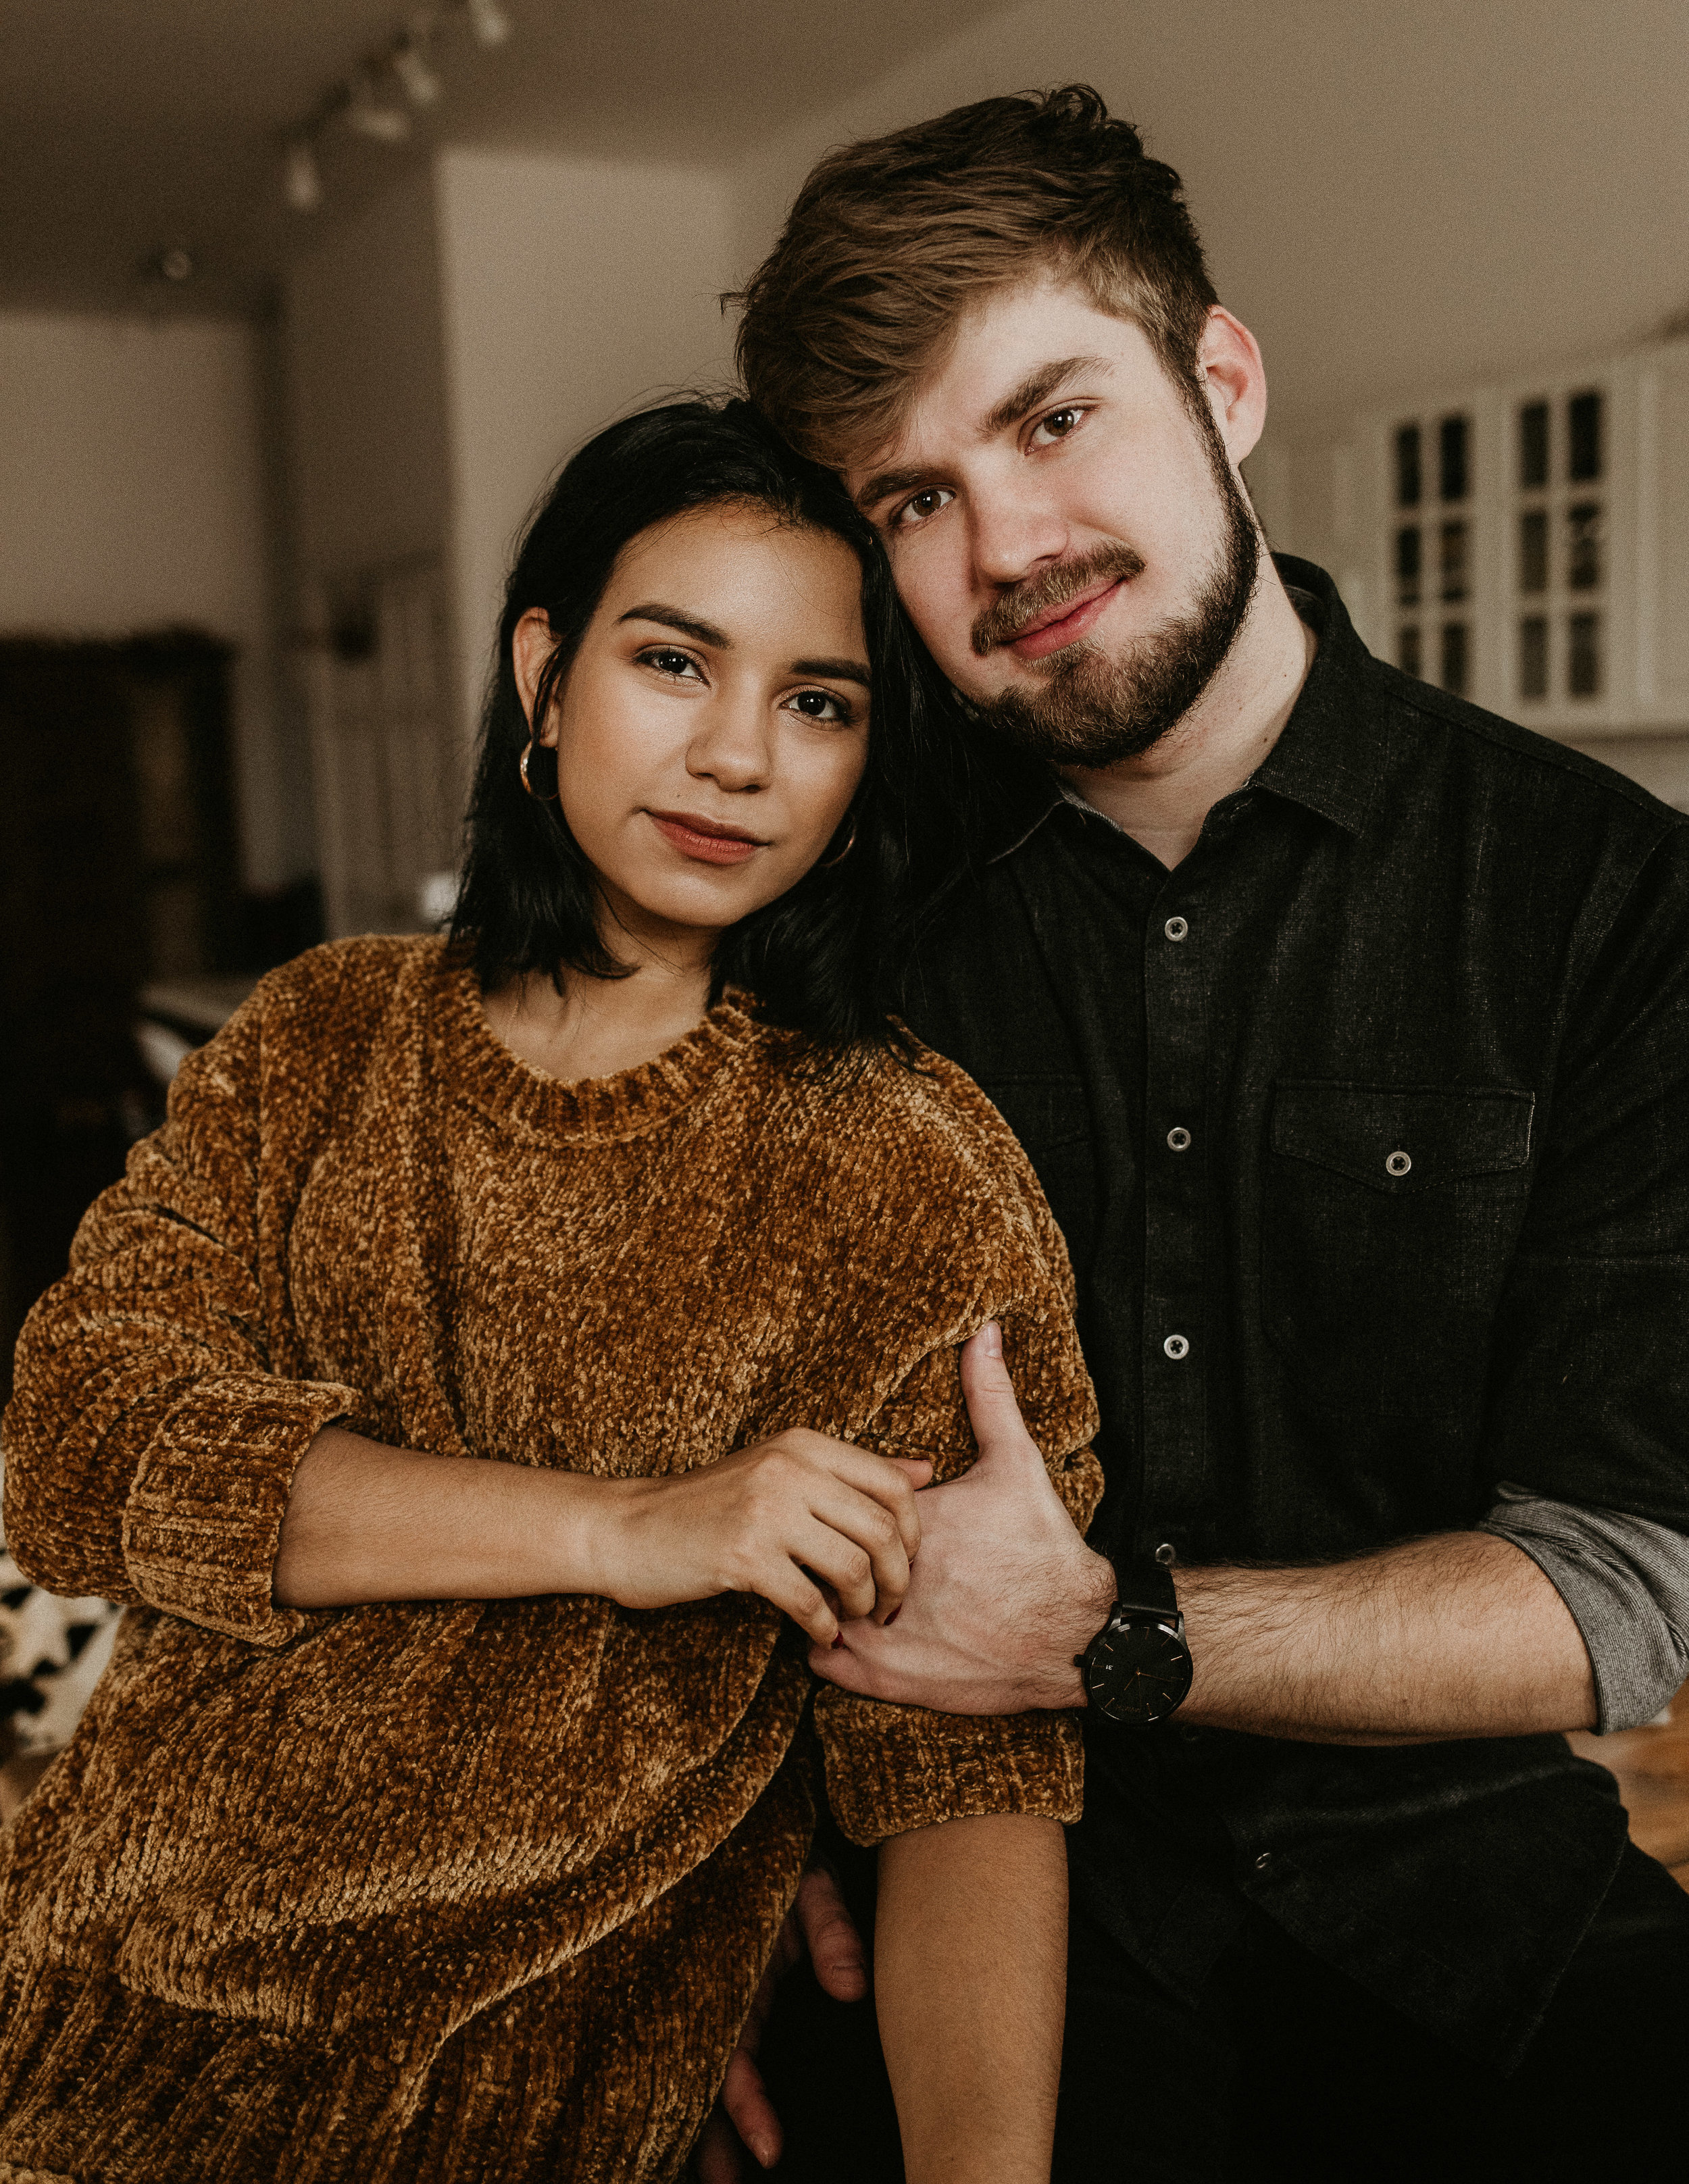 Couple In-Home Session 25.jpg